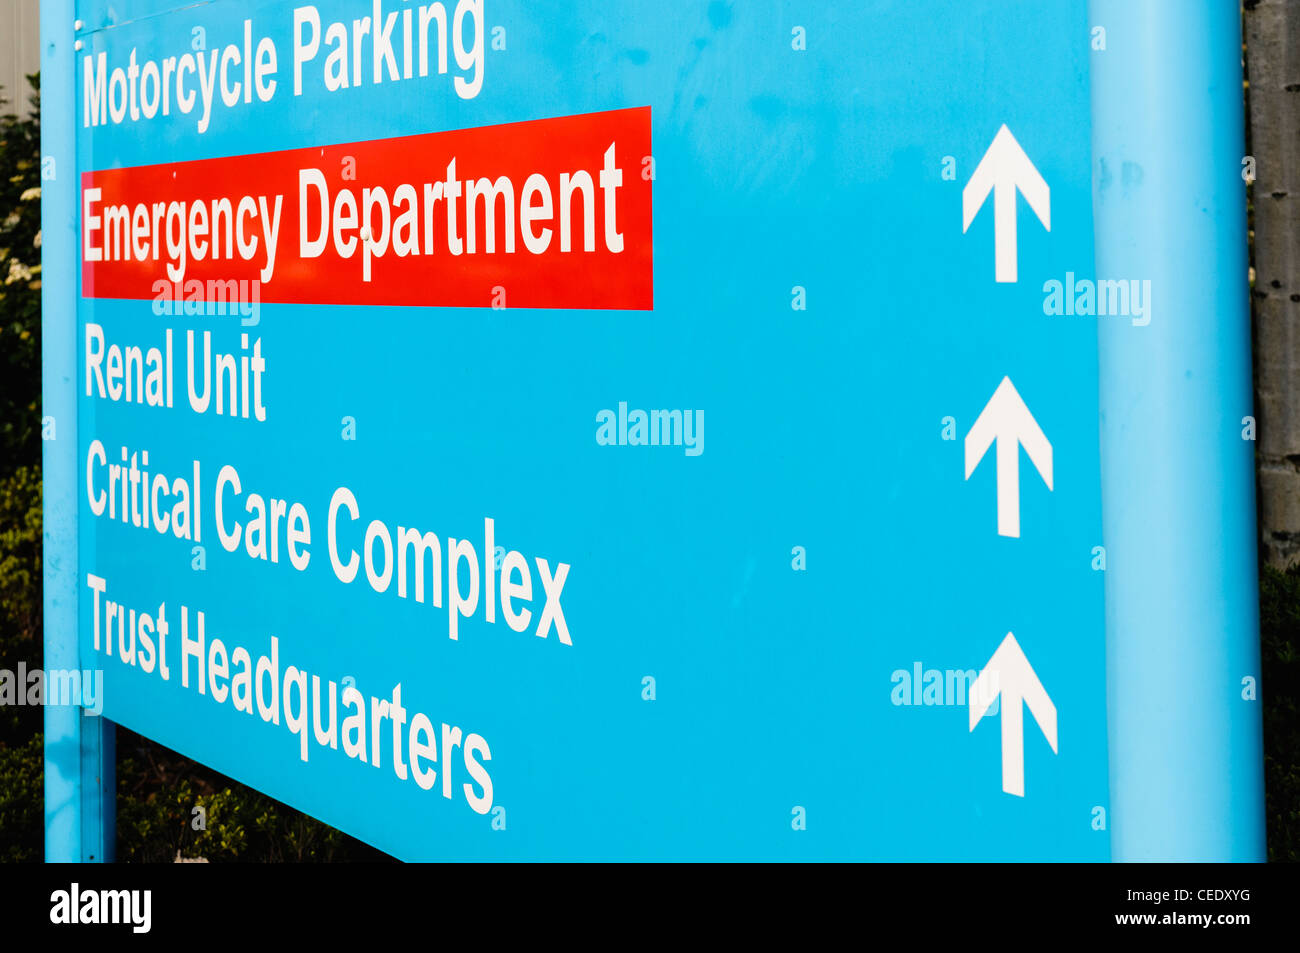 Hospital sign for Emergency Department, Renal Unit, Critical Care and Trust HQ - Stock Image